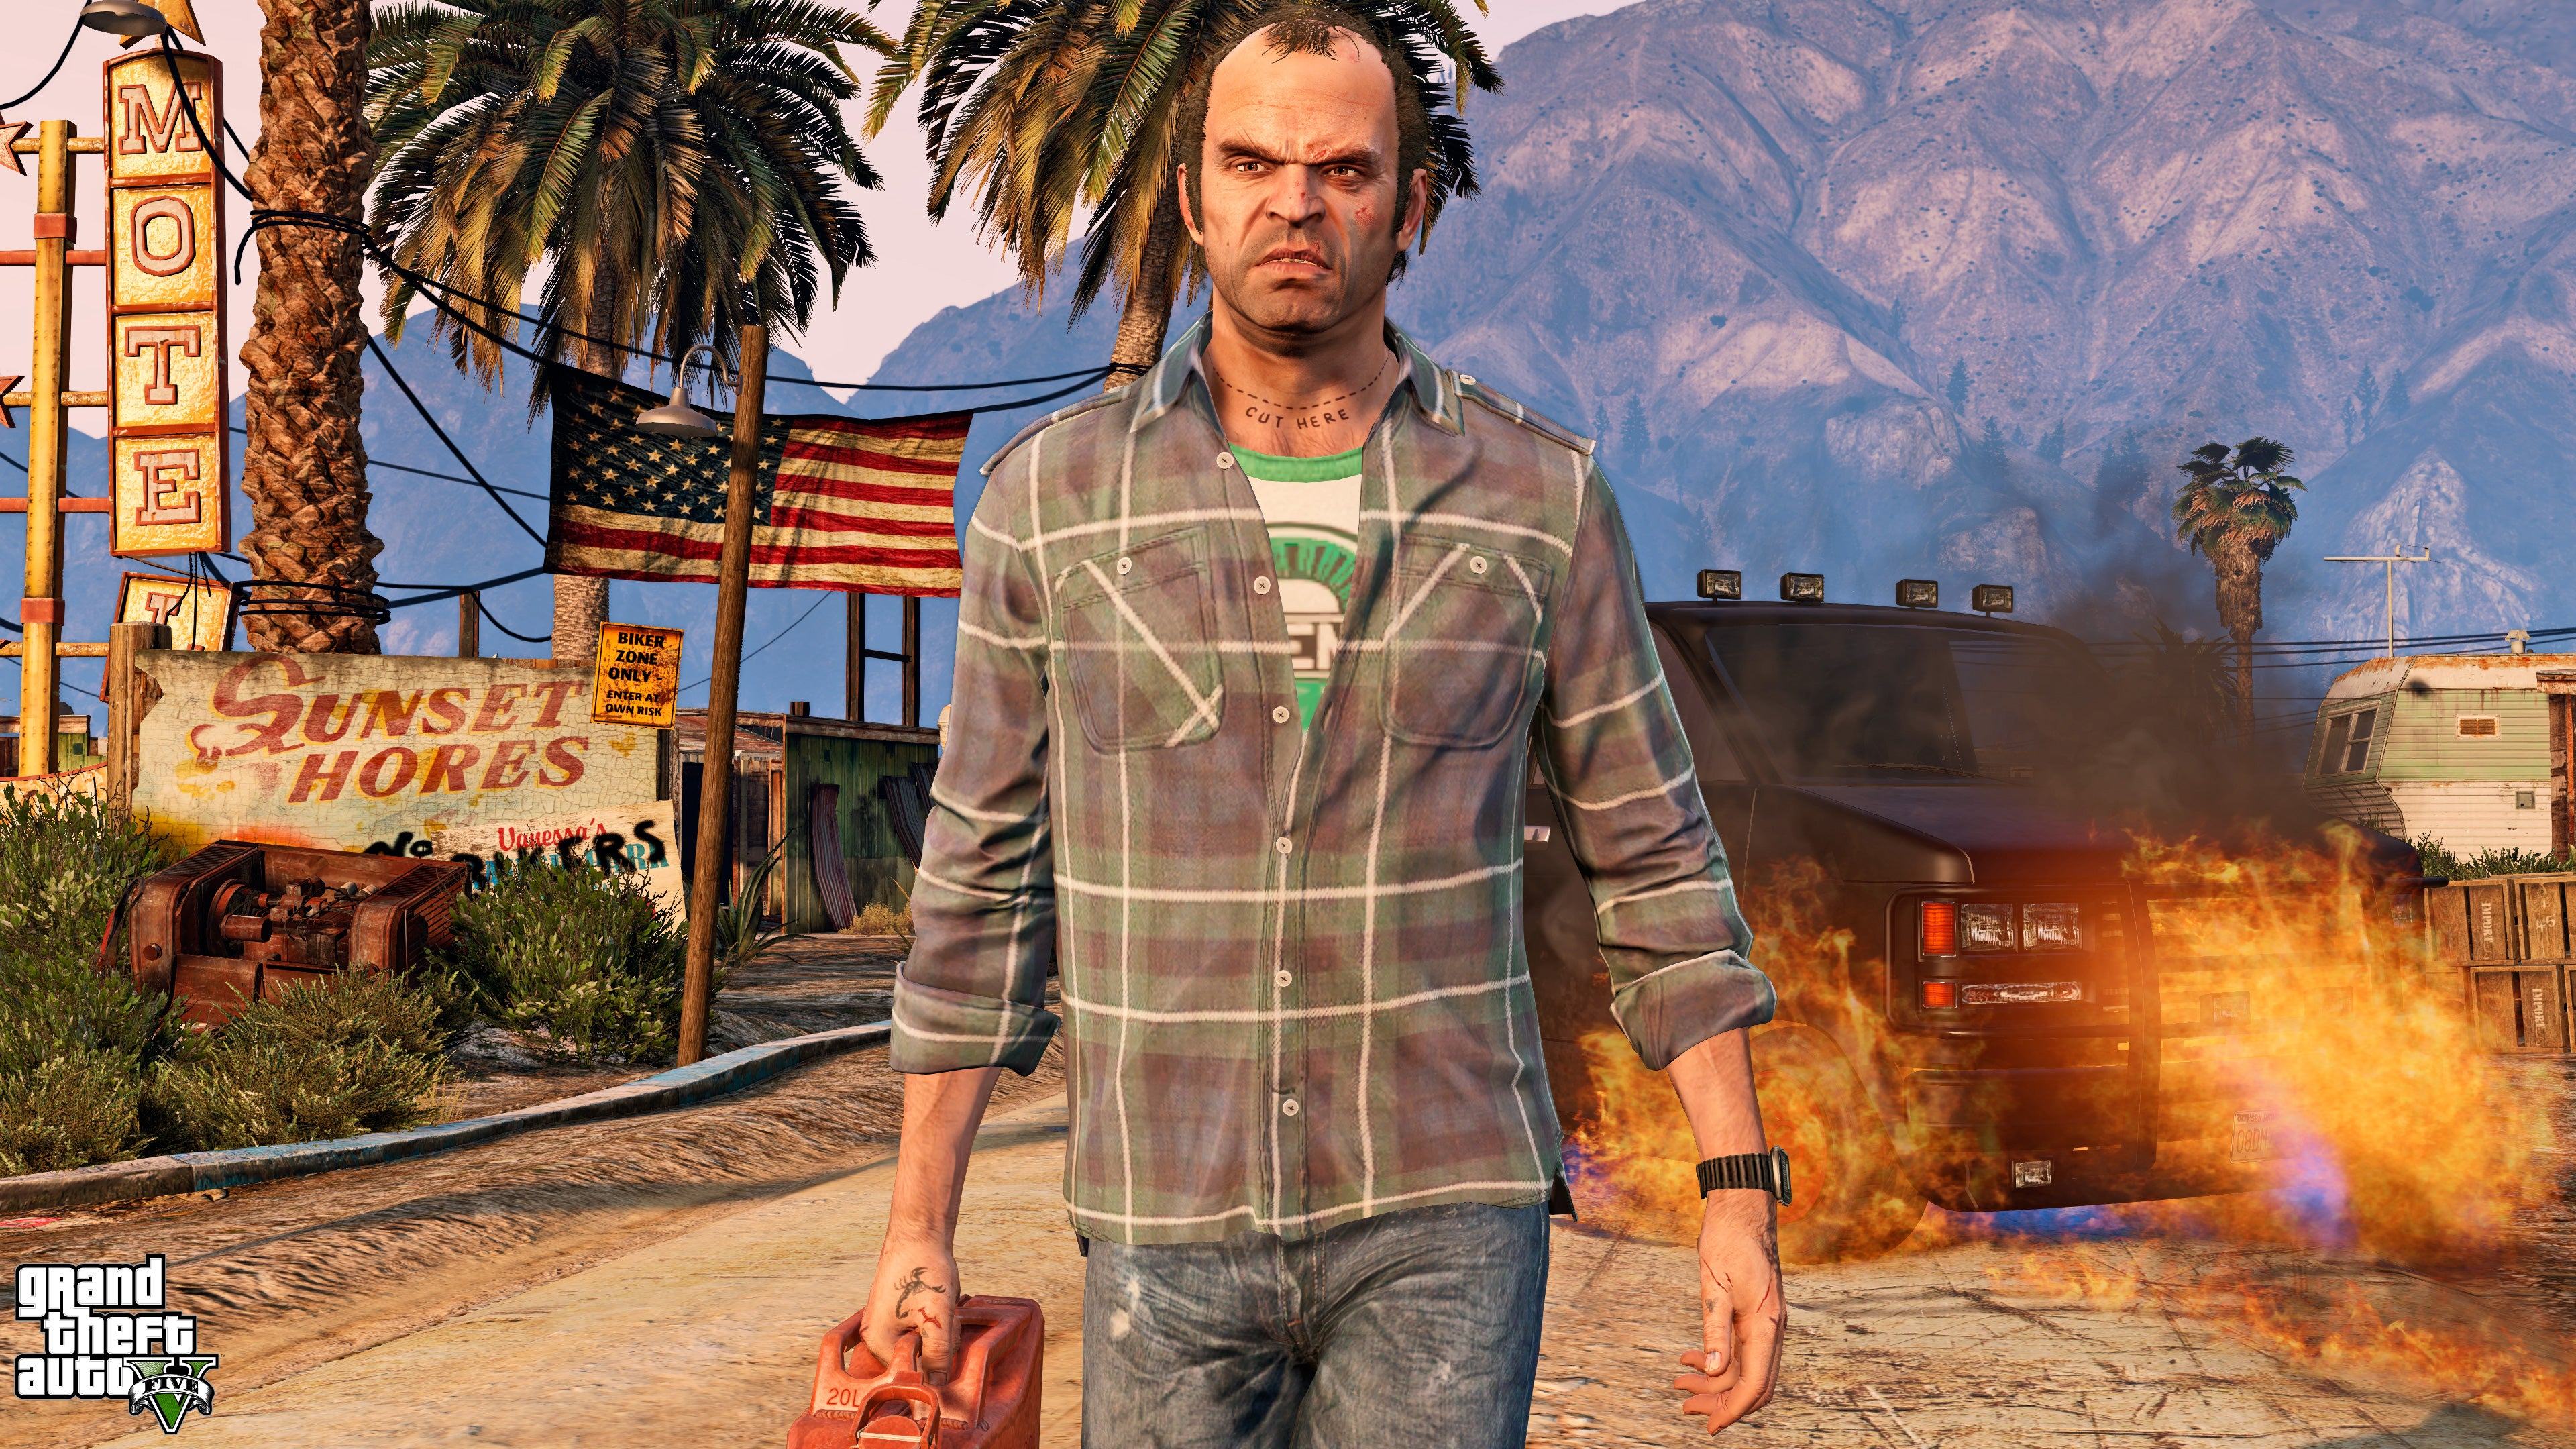 Watchdog Slams Lead Grand Theft Auto Studio For Avoiding Corporate Taxes In The UK